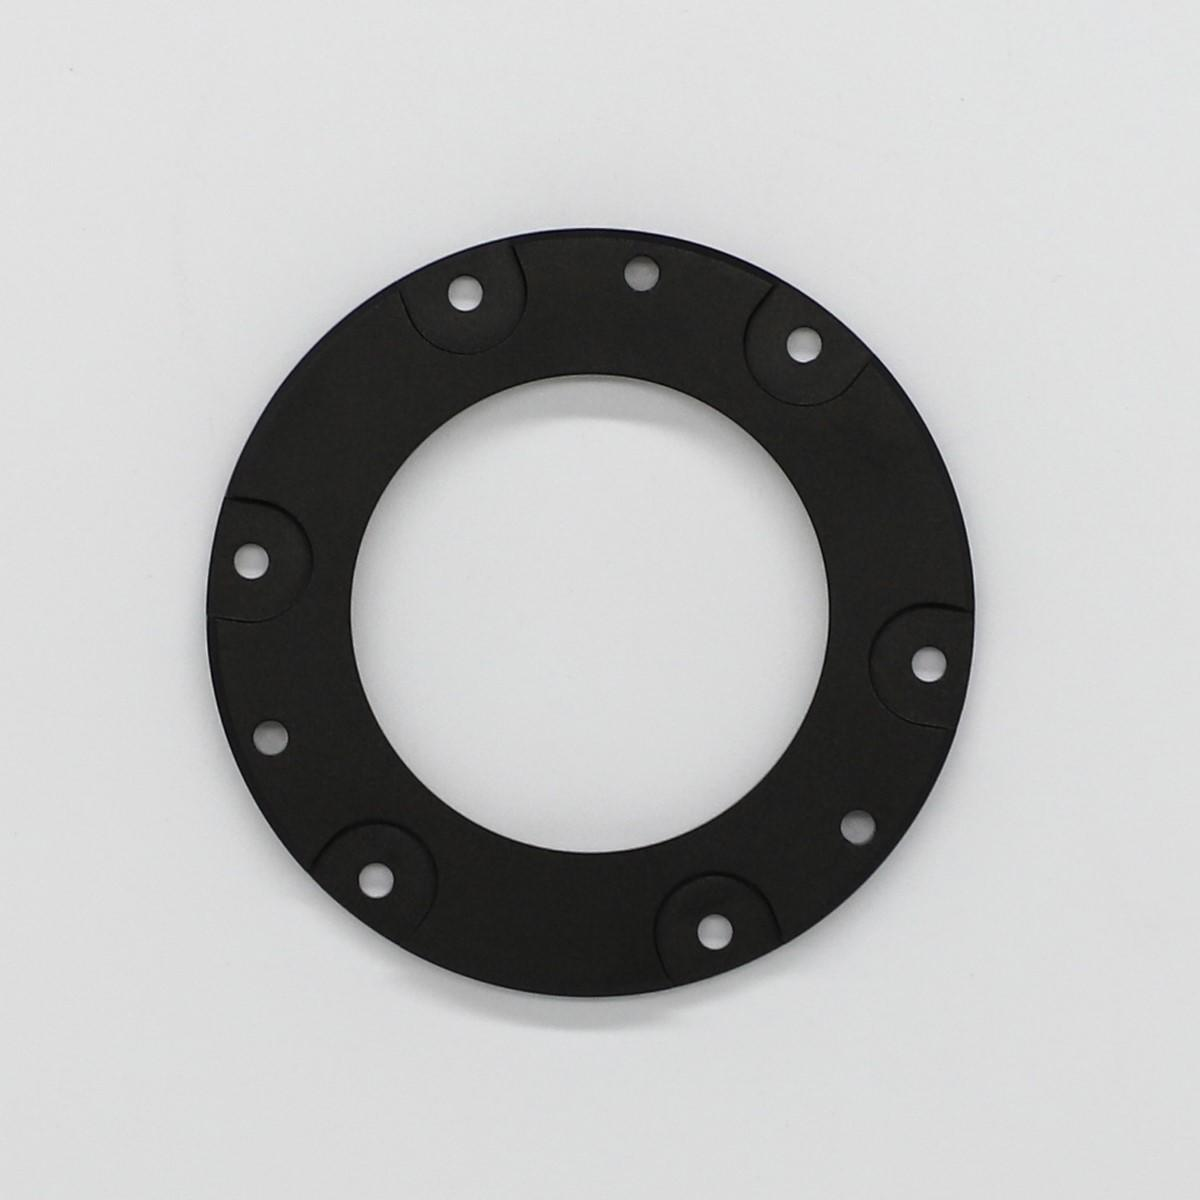 Xavier high-precision cnc machined lens parts high performance from top factory